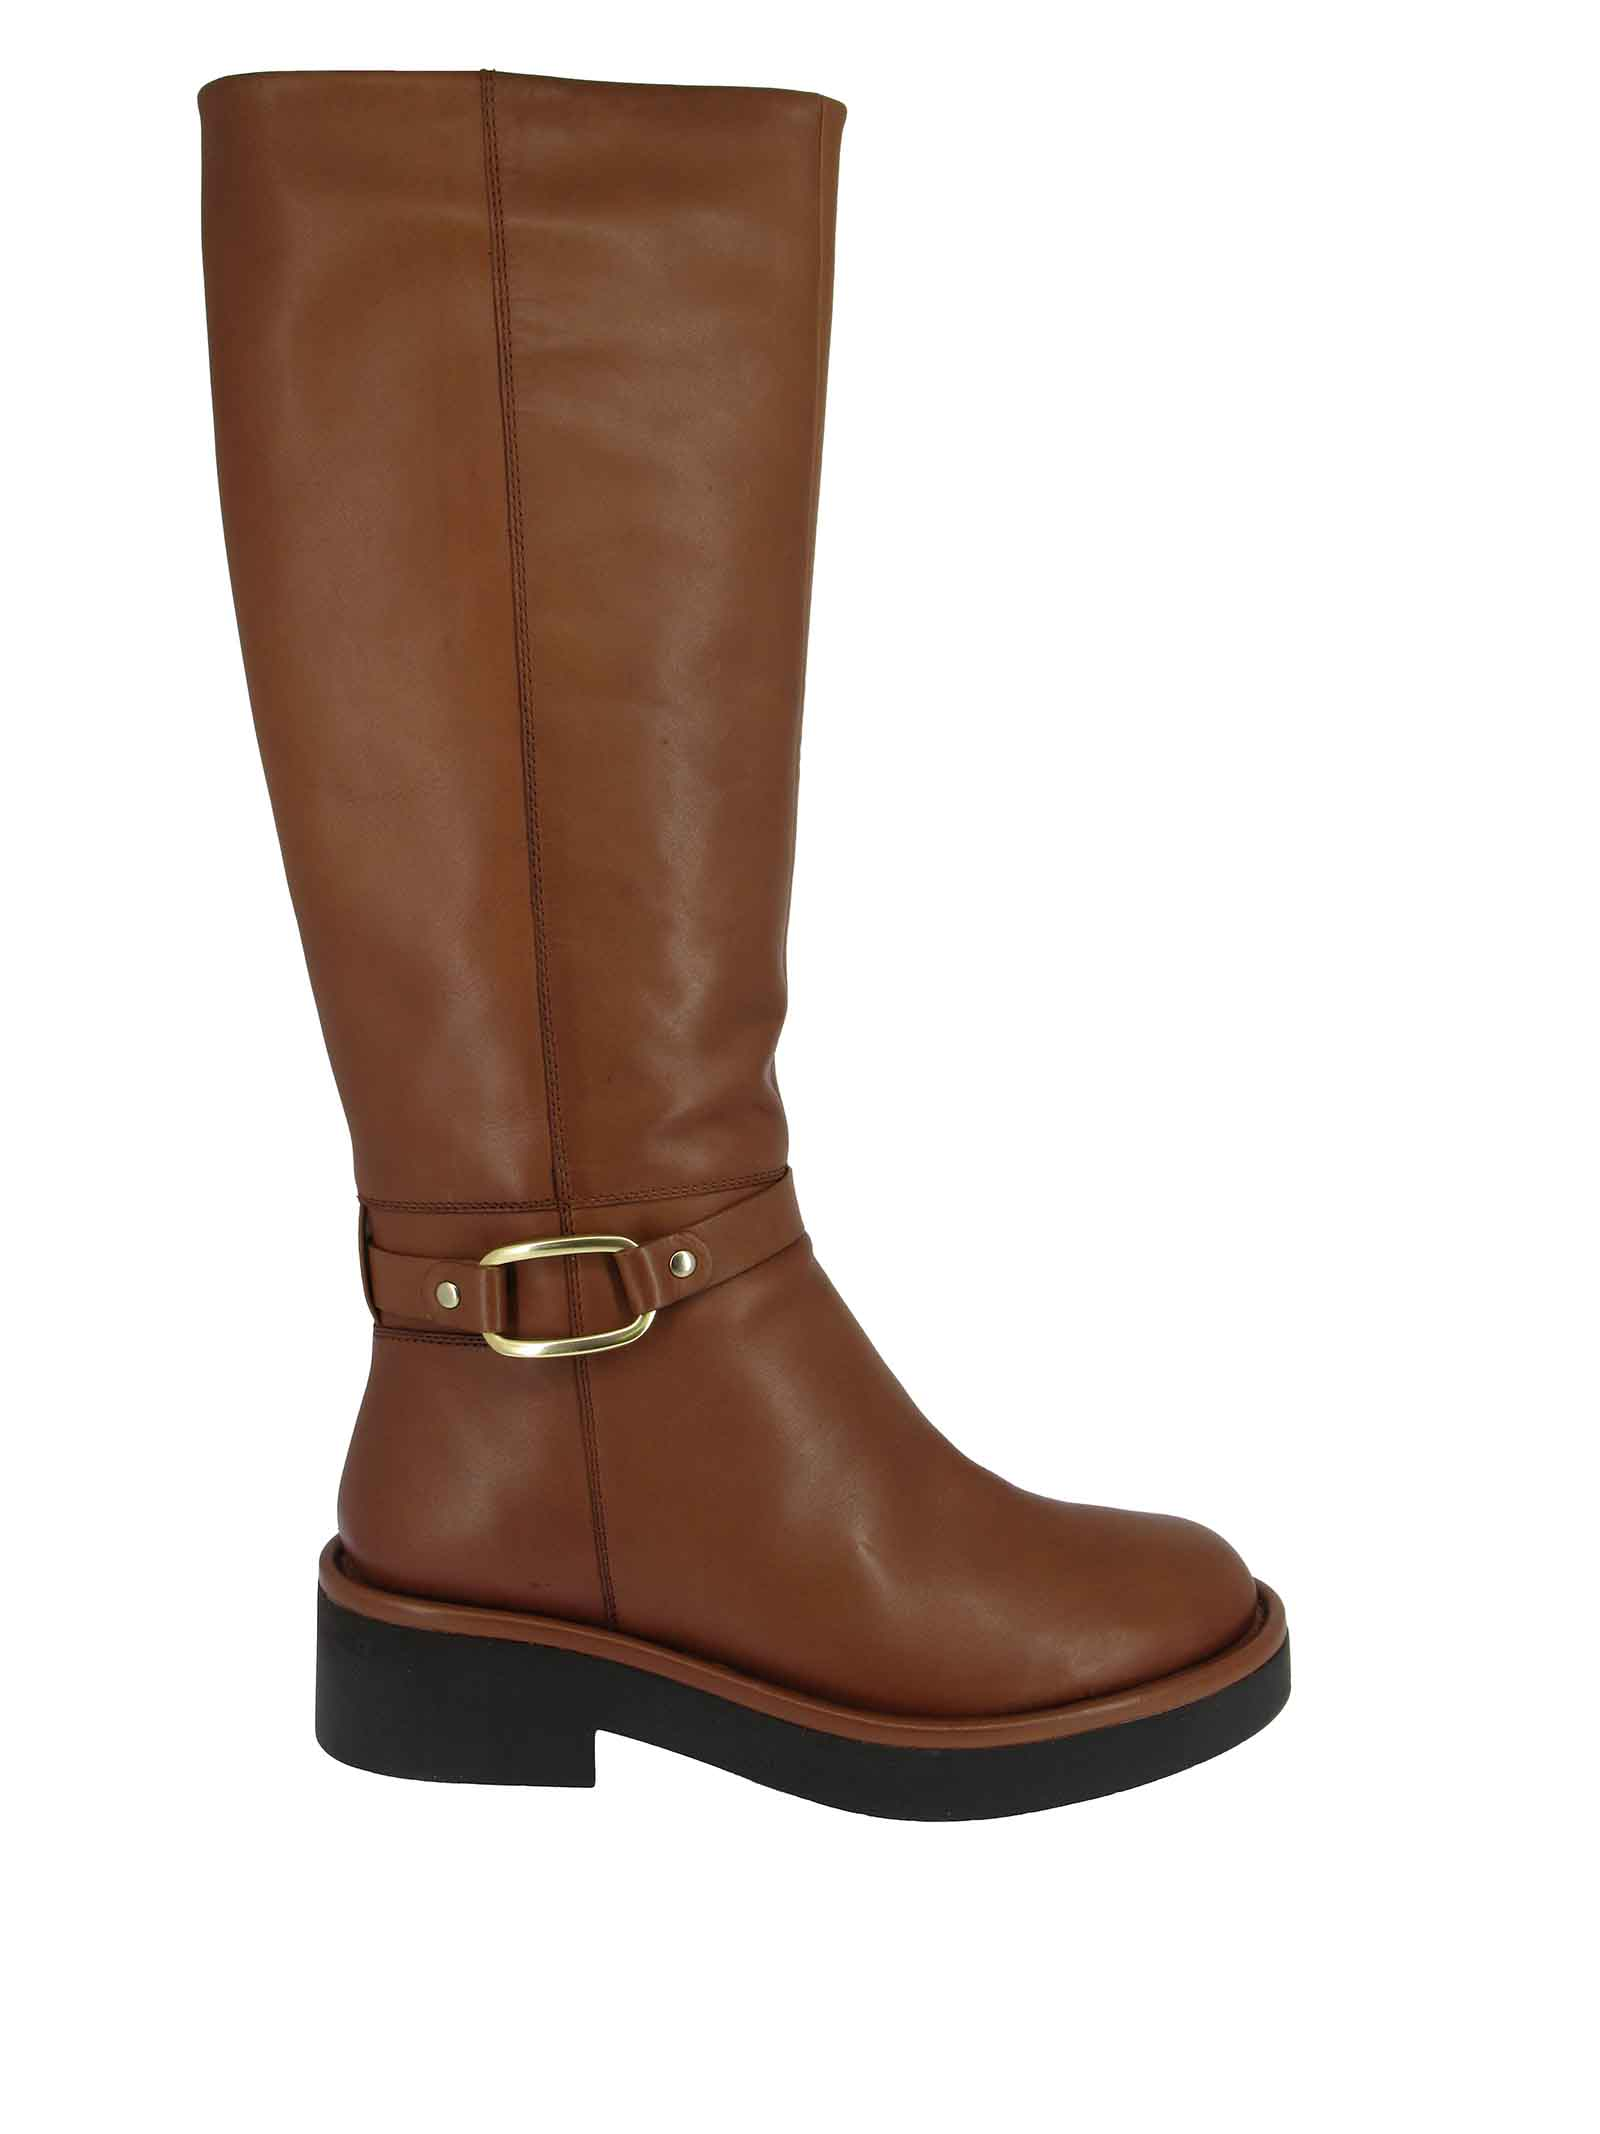 Women's Shoes Boots in Brown Leather with Gold Side Buckle and Rubber Sole Bruno Premi | Ankle Boots | BC4002X034